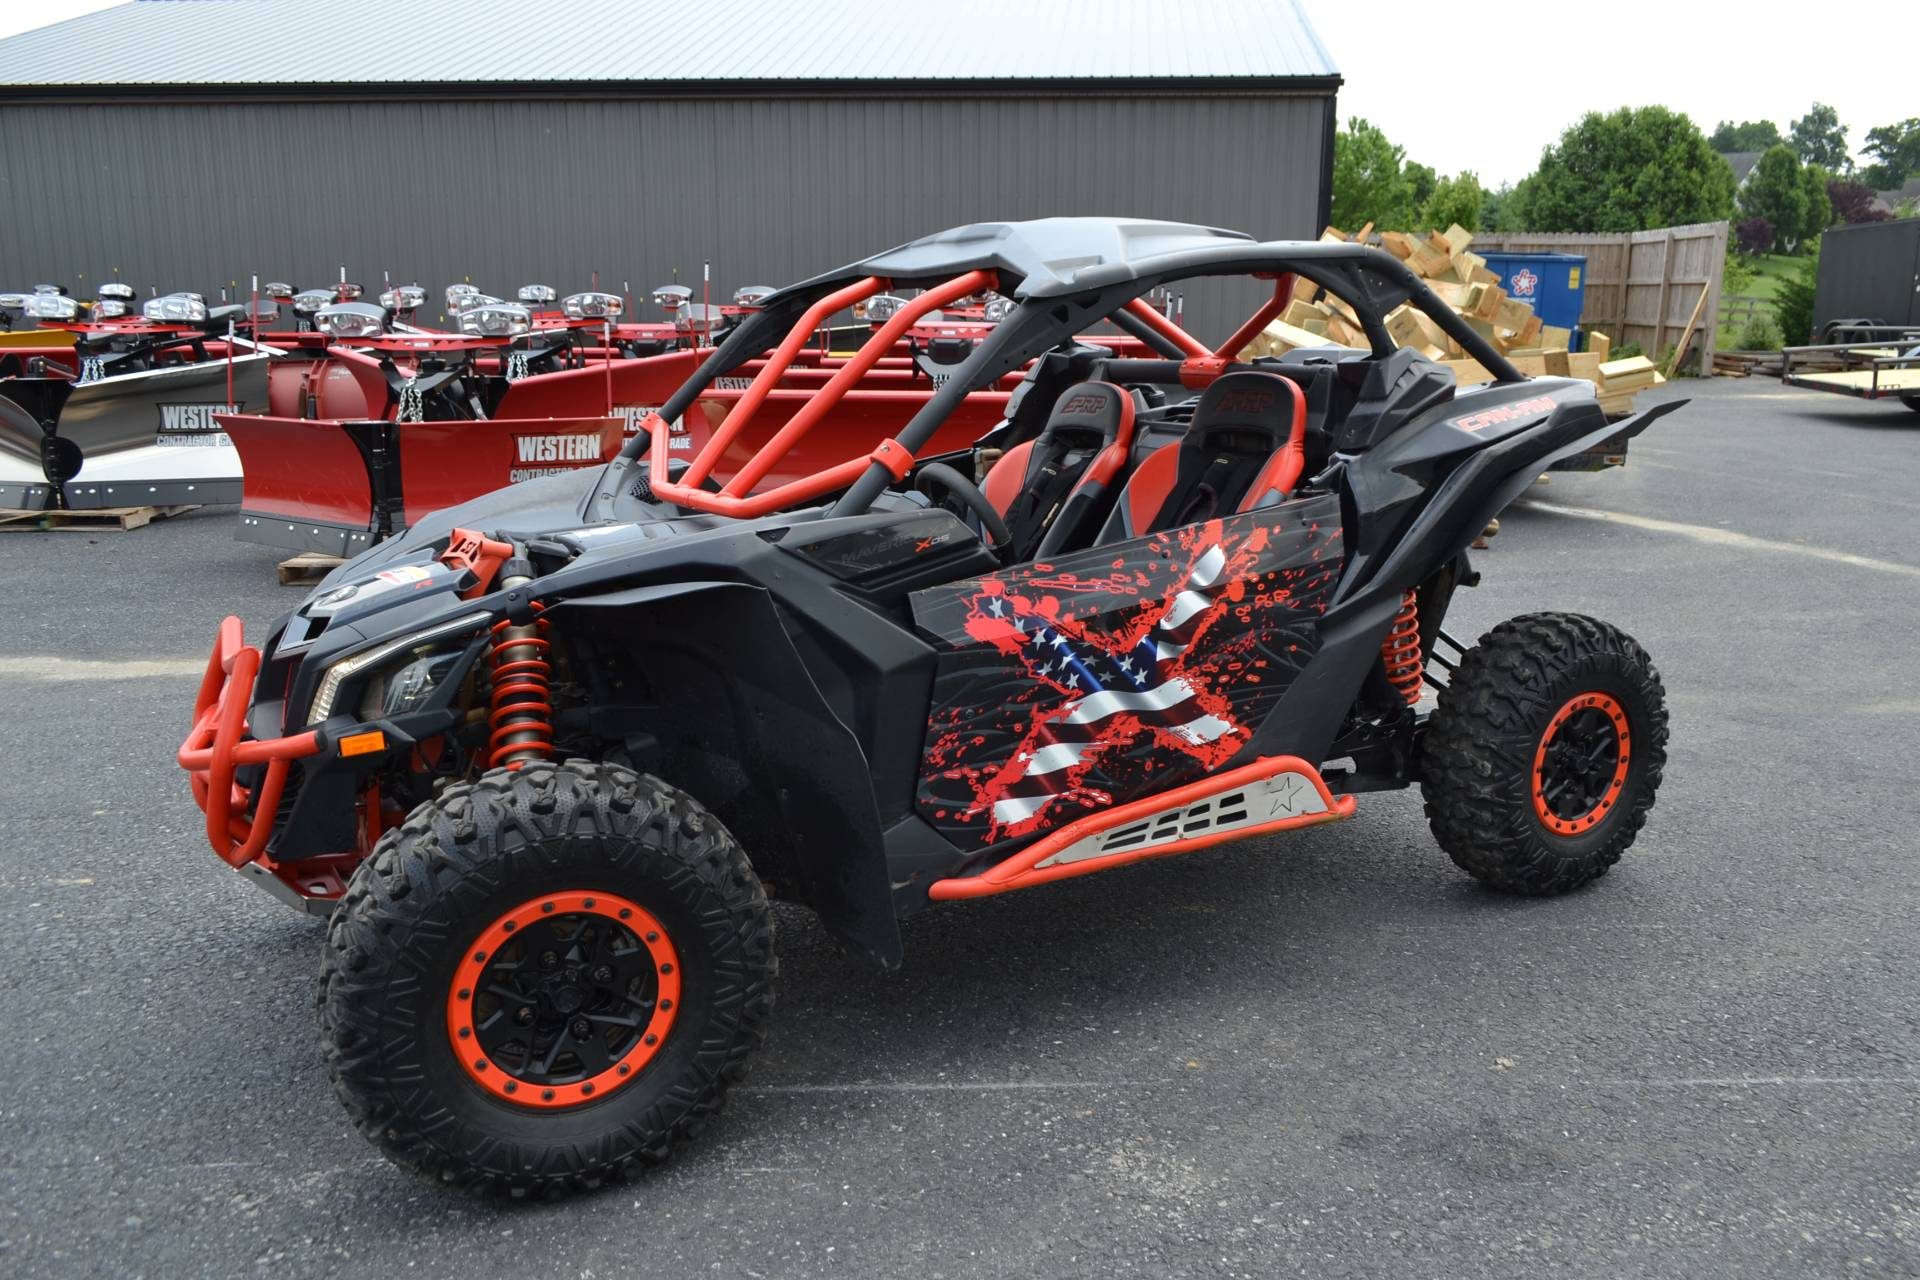 2017 Can-Am Maverick X3 X ds Turbo R for sale 129415